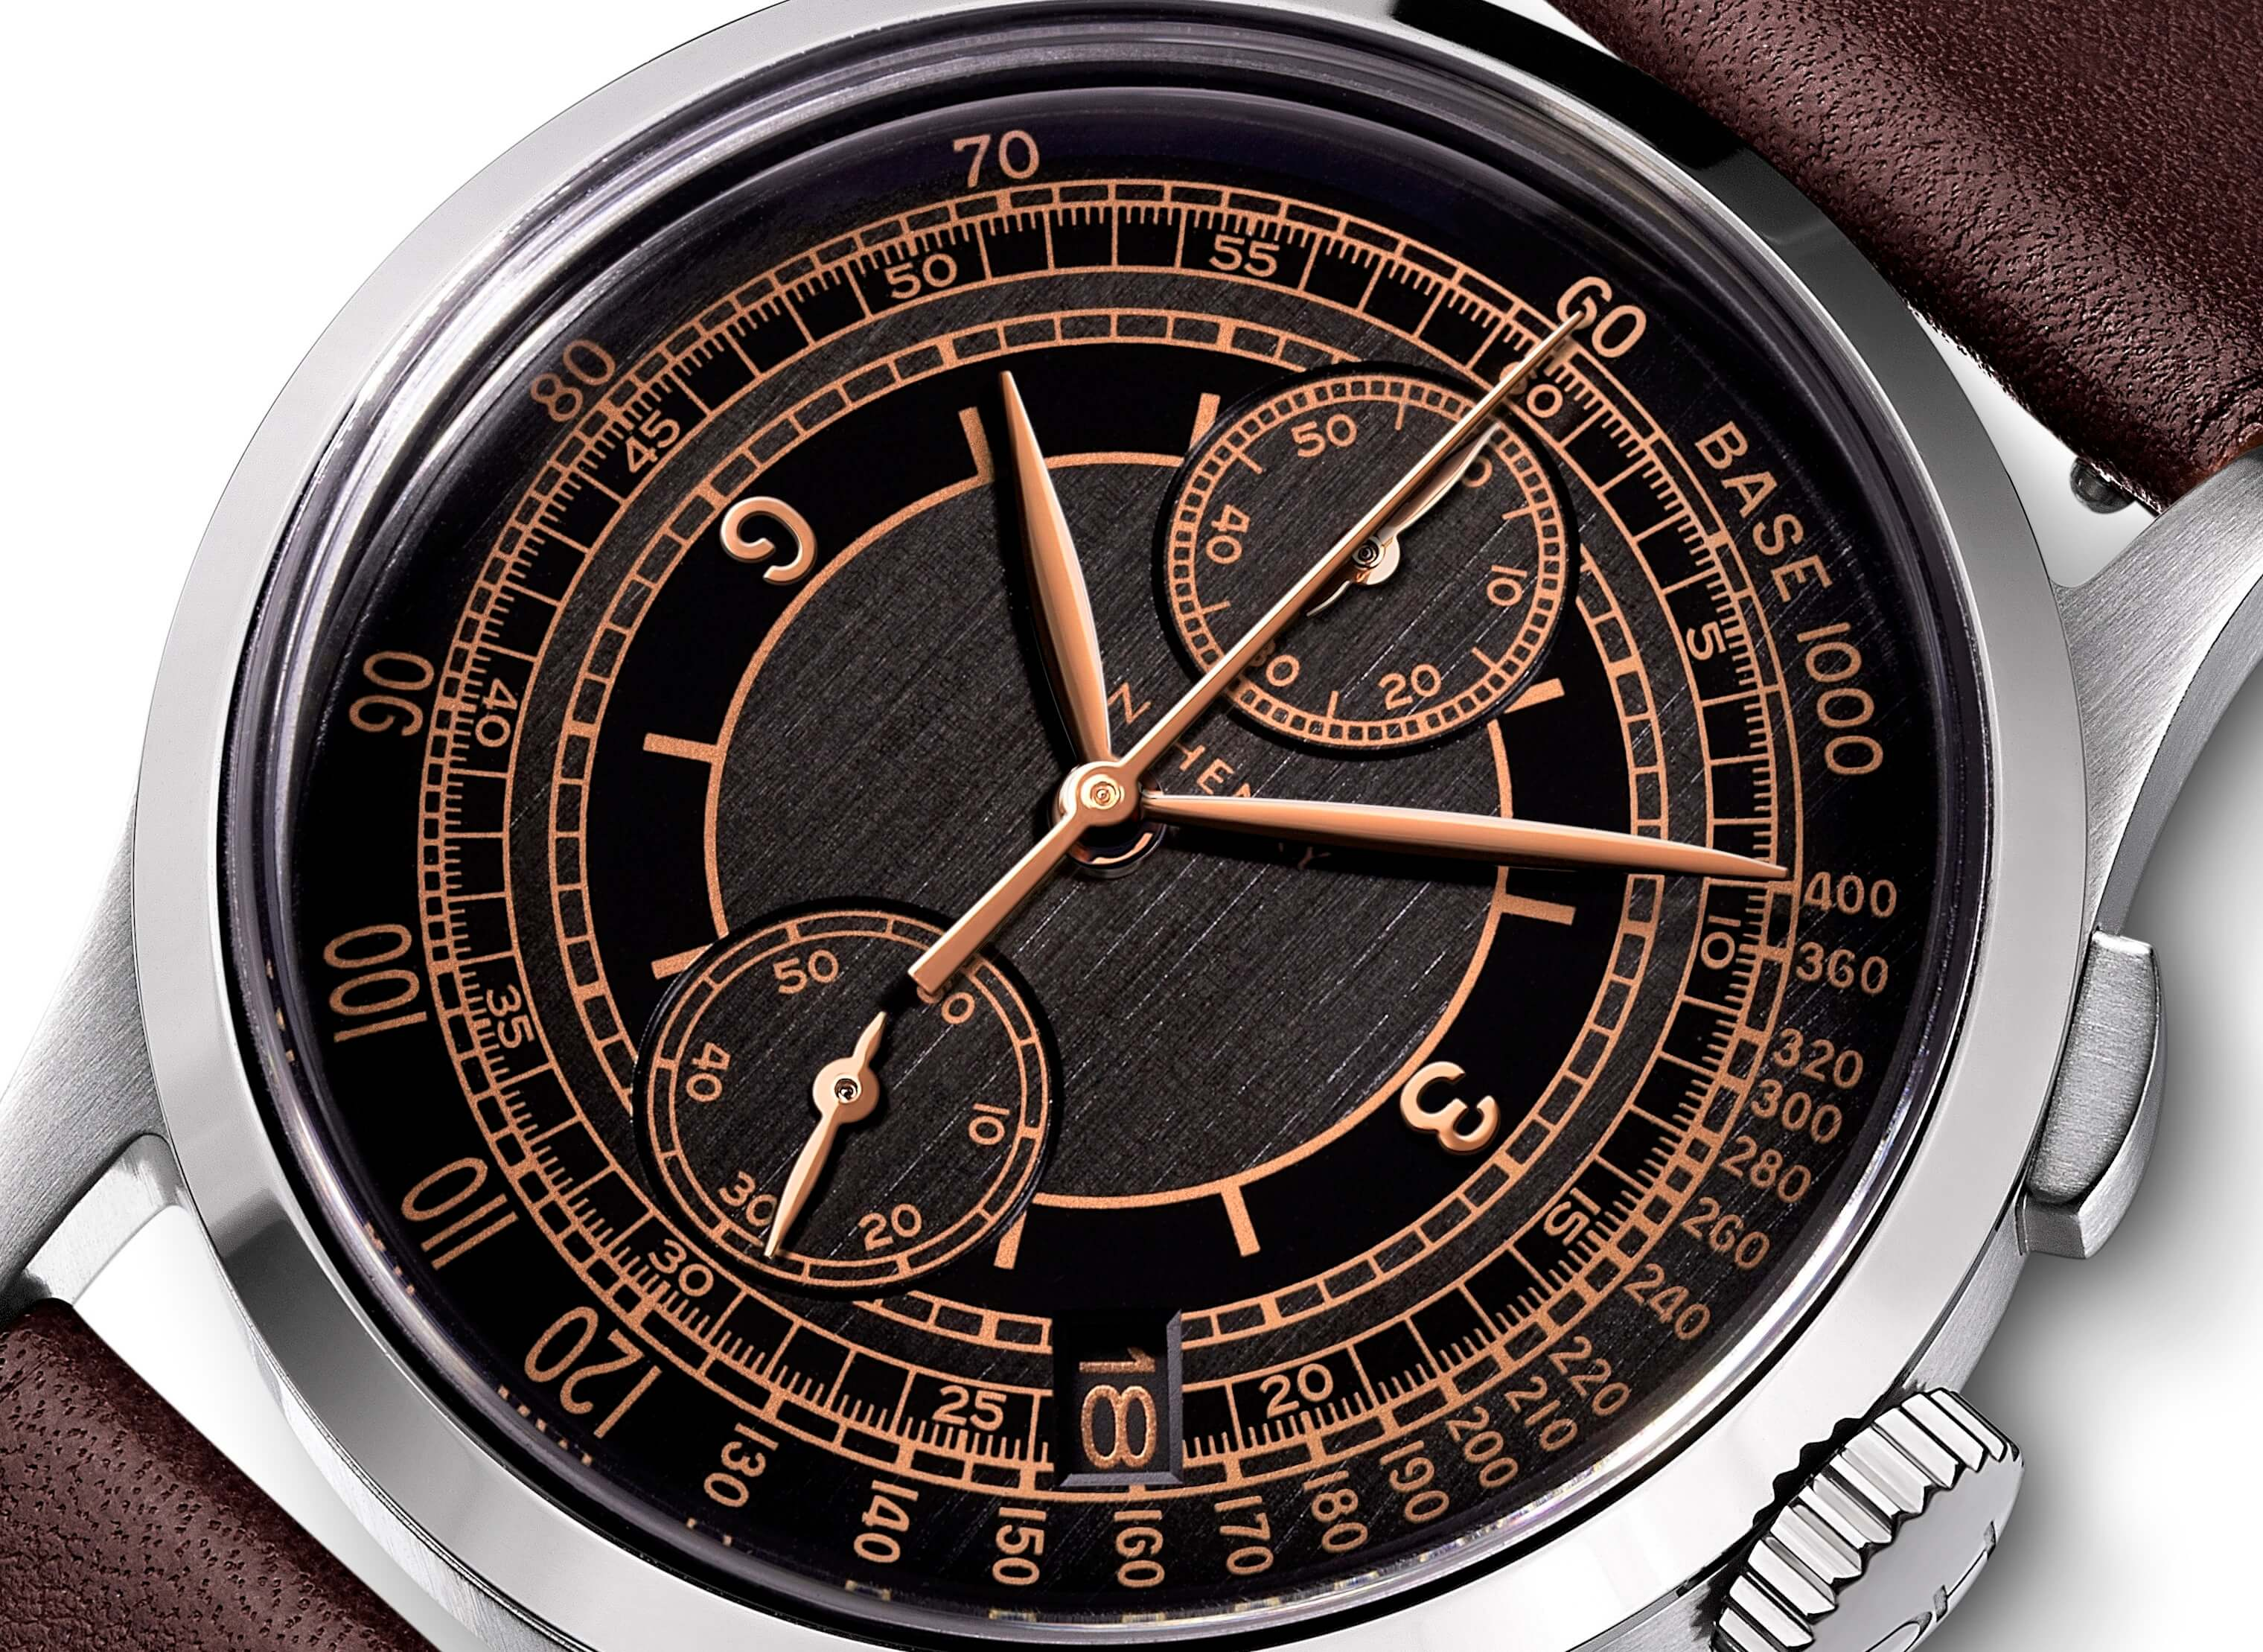 <h3>Dial</h3><p>Black sector dial with Tachymeter, rose gold applied numbers, Leaf-shaped hands, and date window </p>